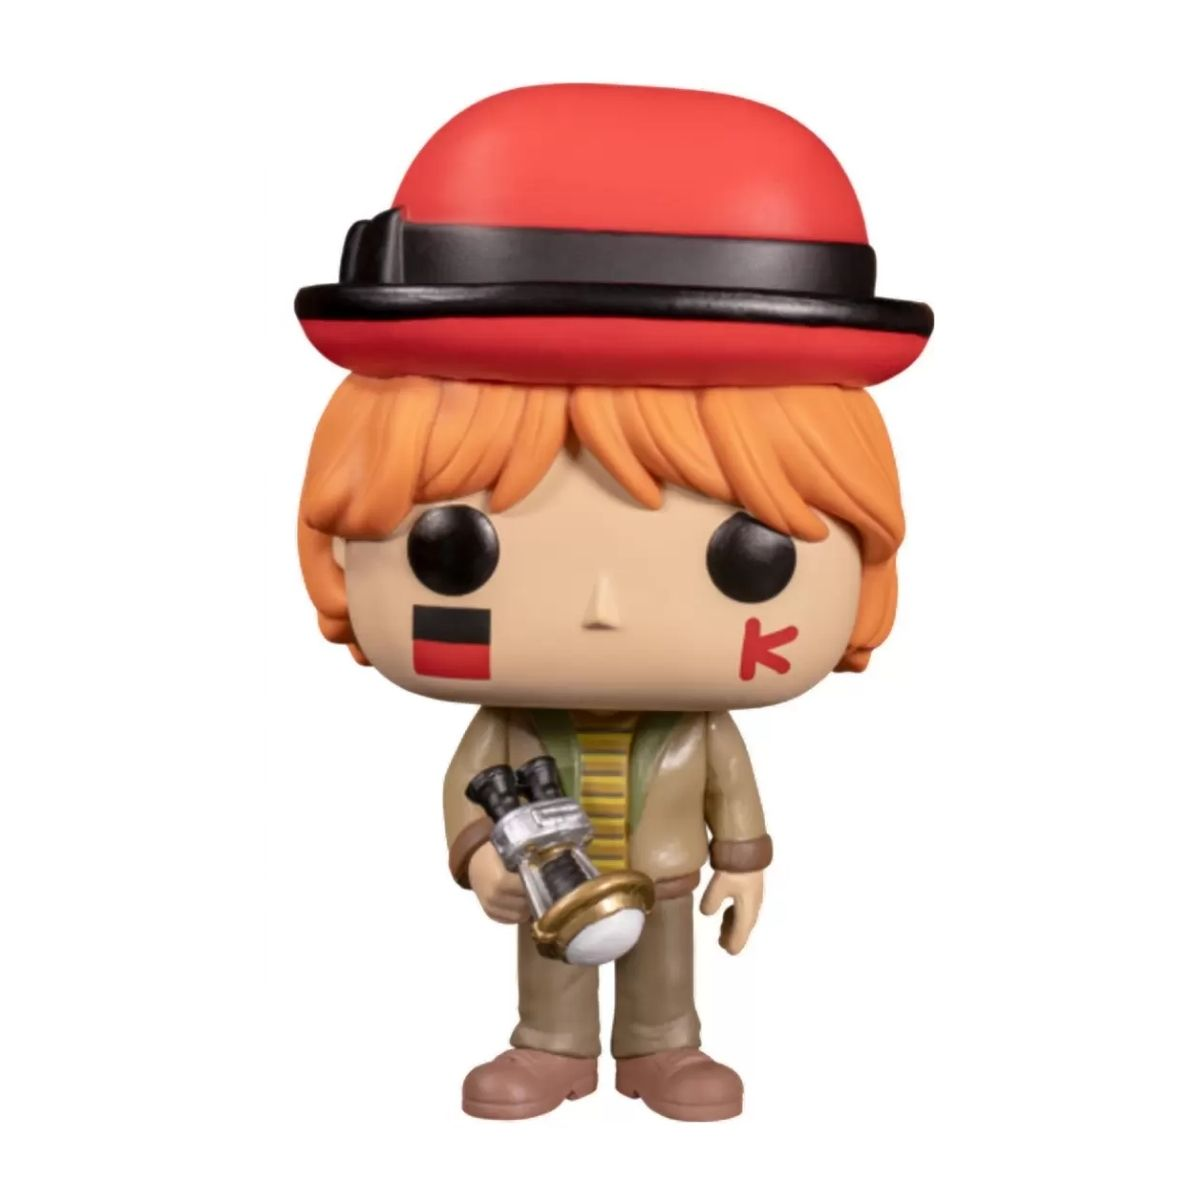 Funko Pop Harry Potter Ron Weasley Nycc 2020 # 121  - Game Land Brinquedos